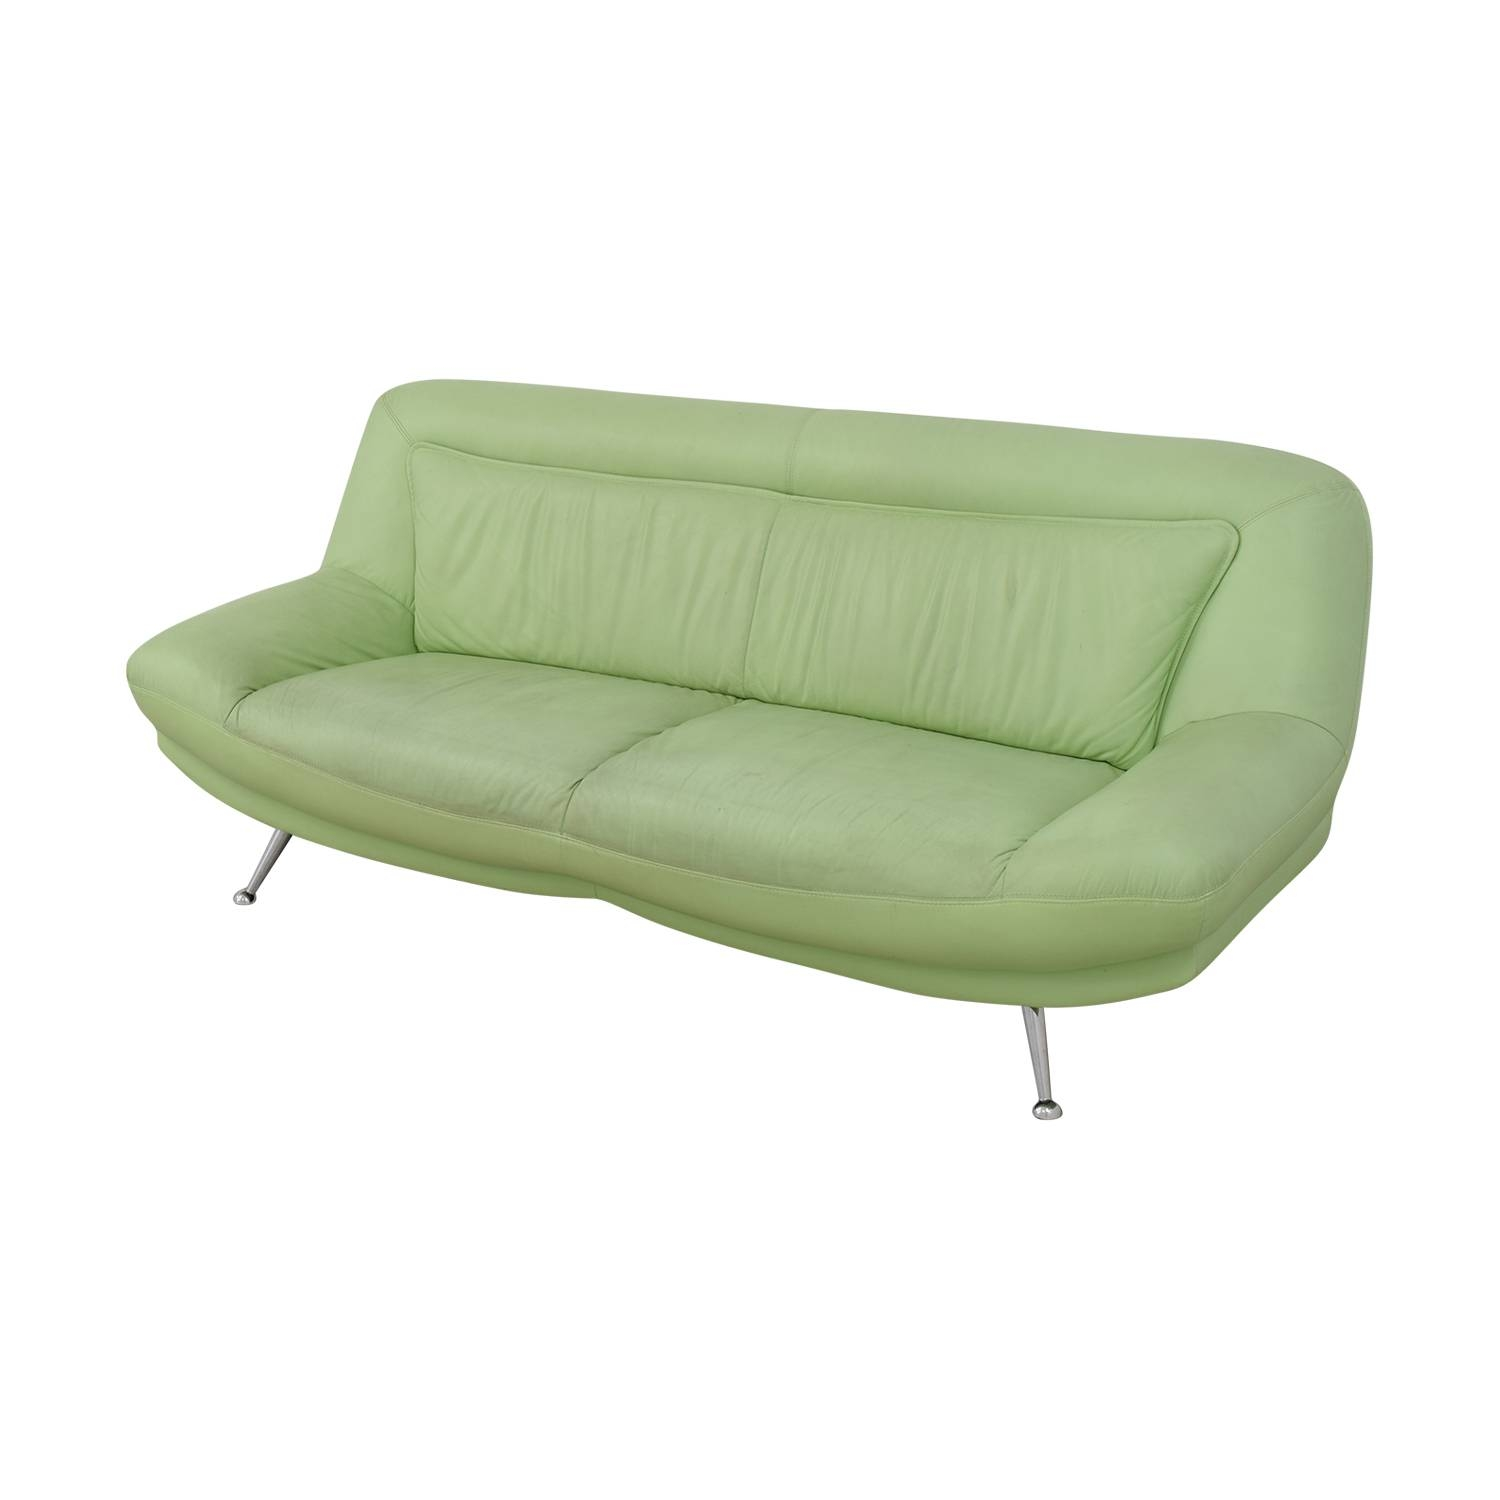 40% Off   Italian Mint Green Leather Two Cushion Sofa / Sofas With Regard